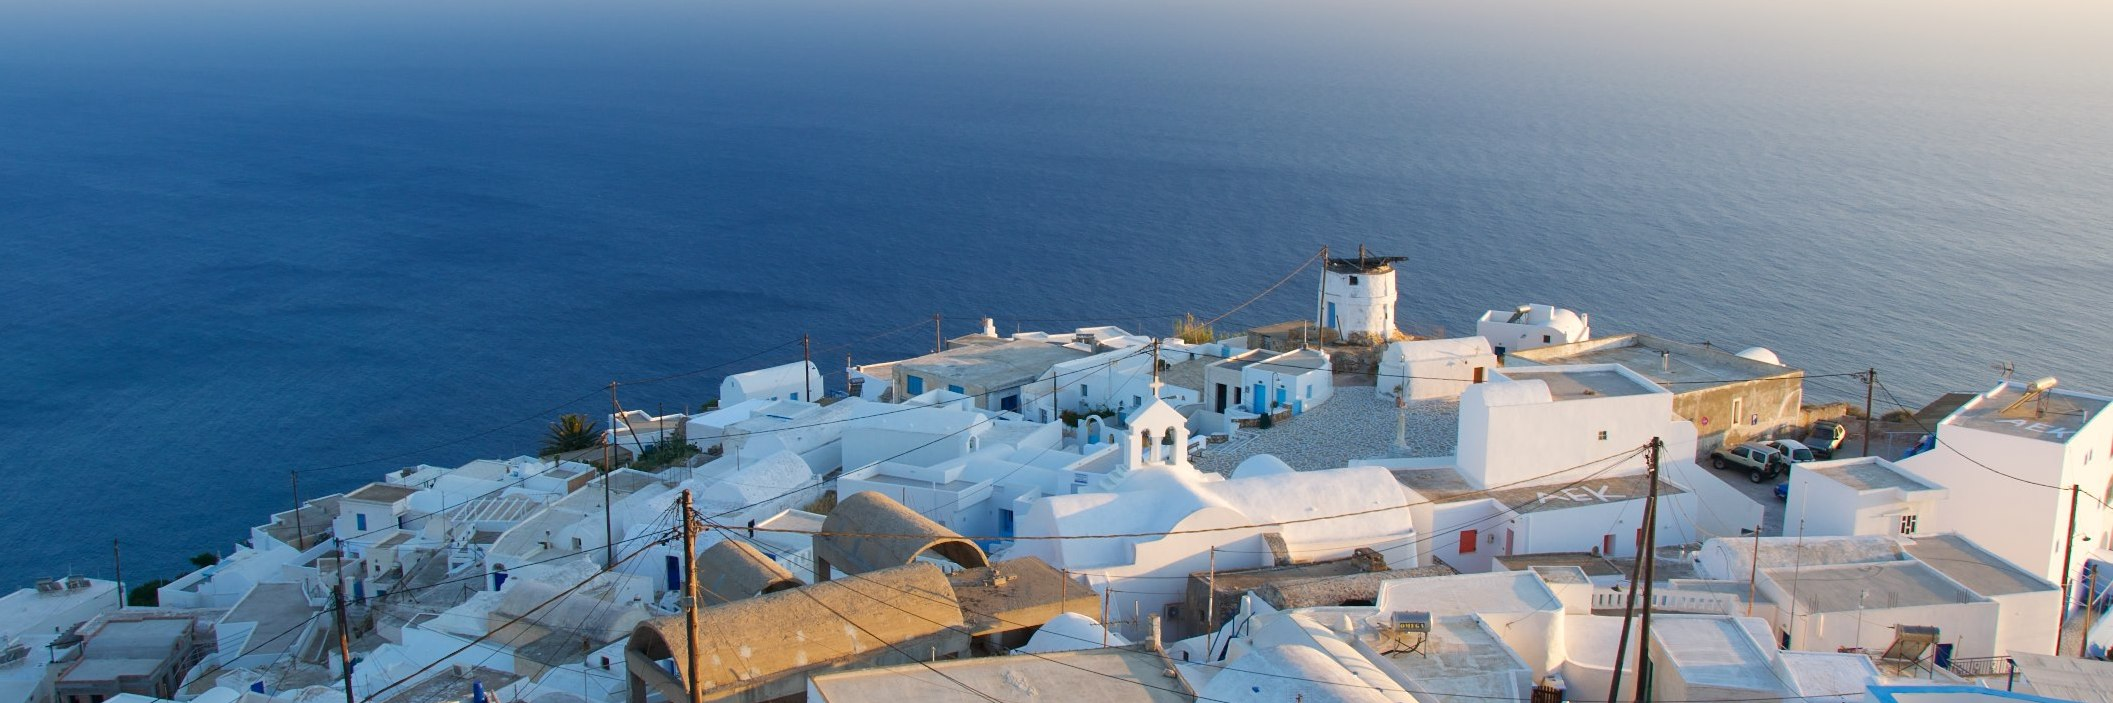 Anafi - The Gibraltar of the Aegean Sea - Travel Guide